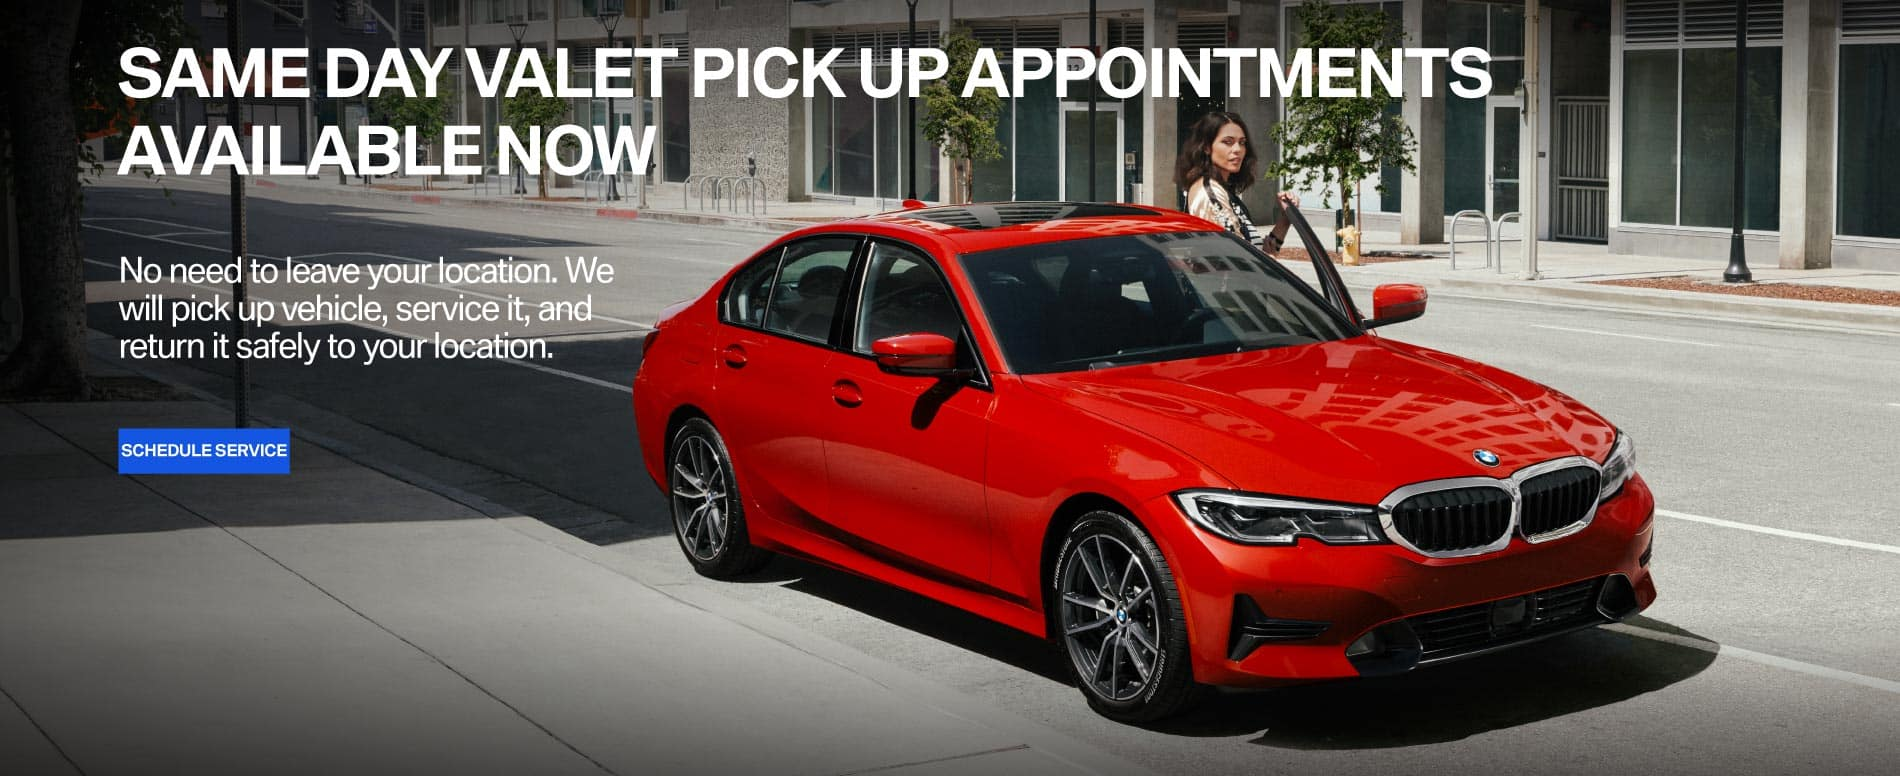 Same day valet pick up appointments available now